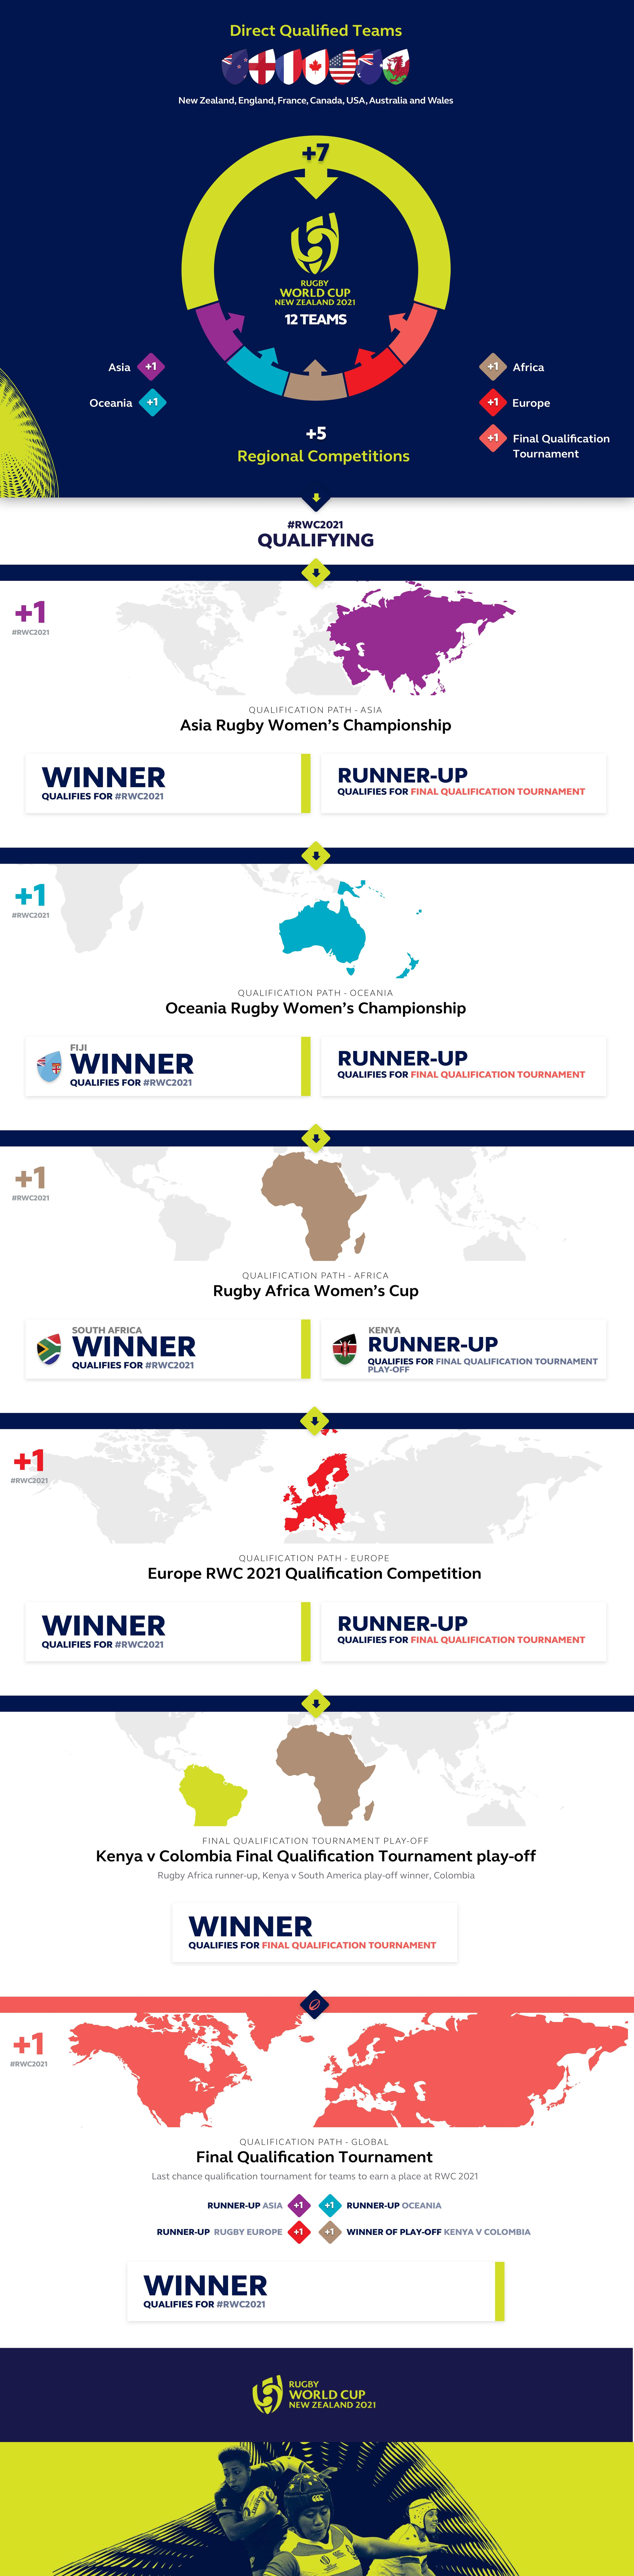 http://www.worldrugby.org/photos/572278